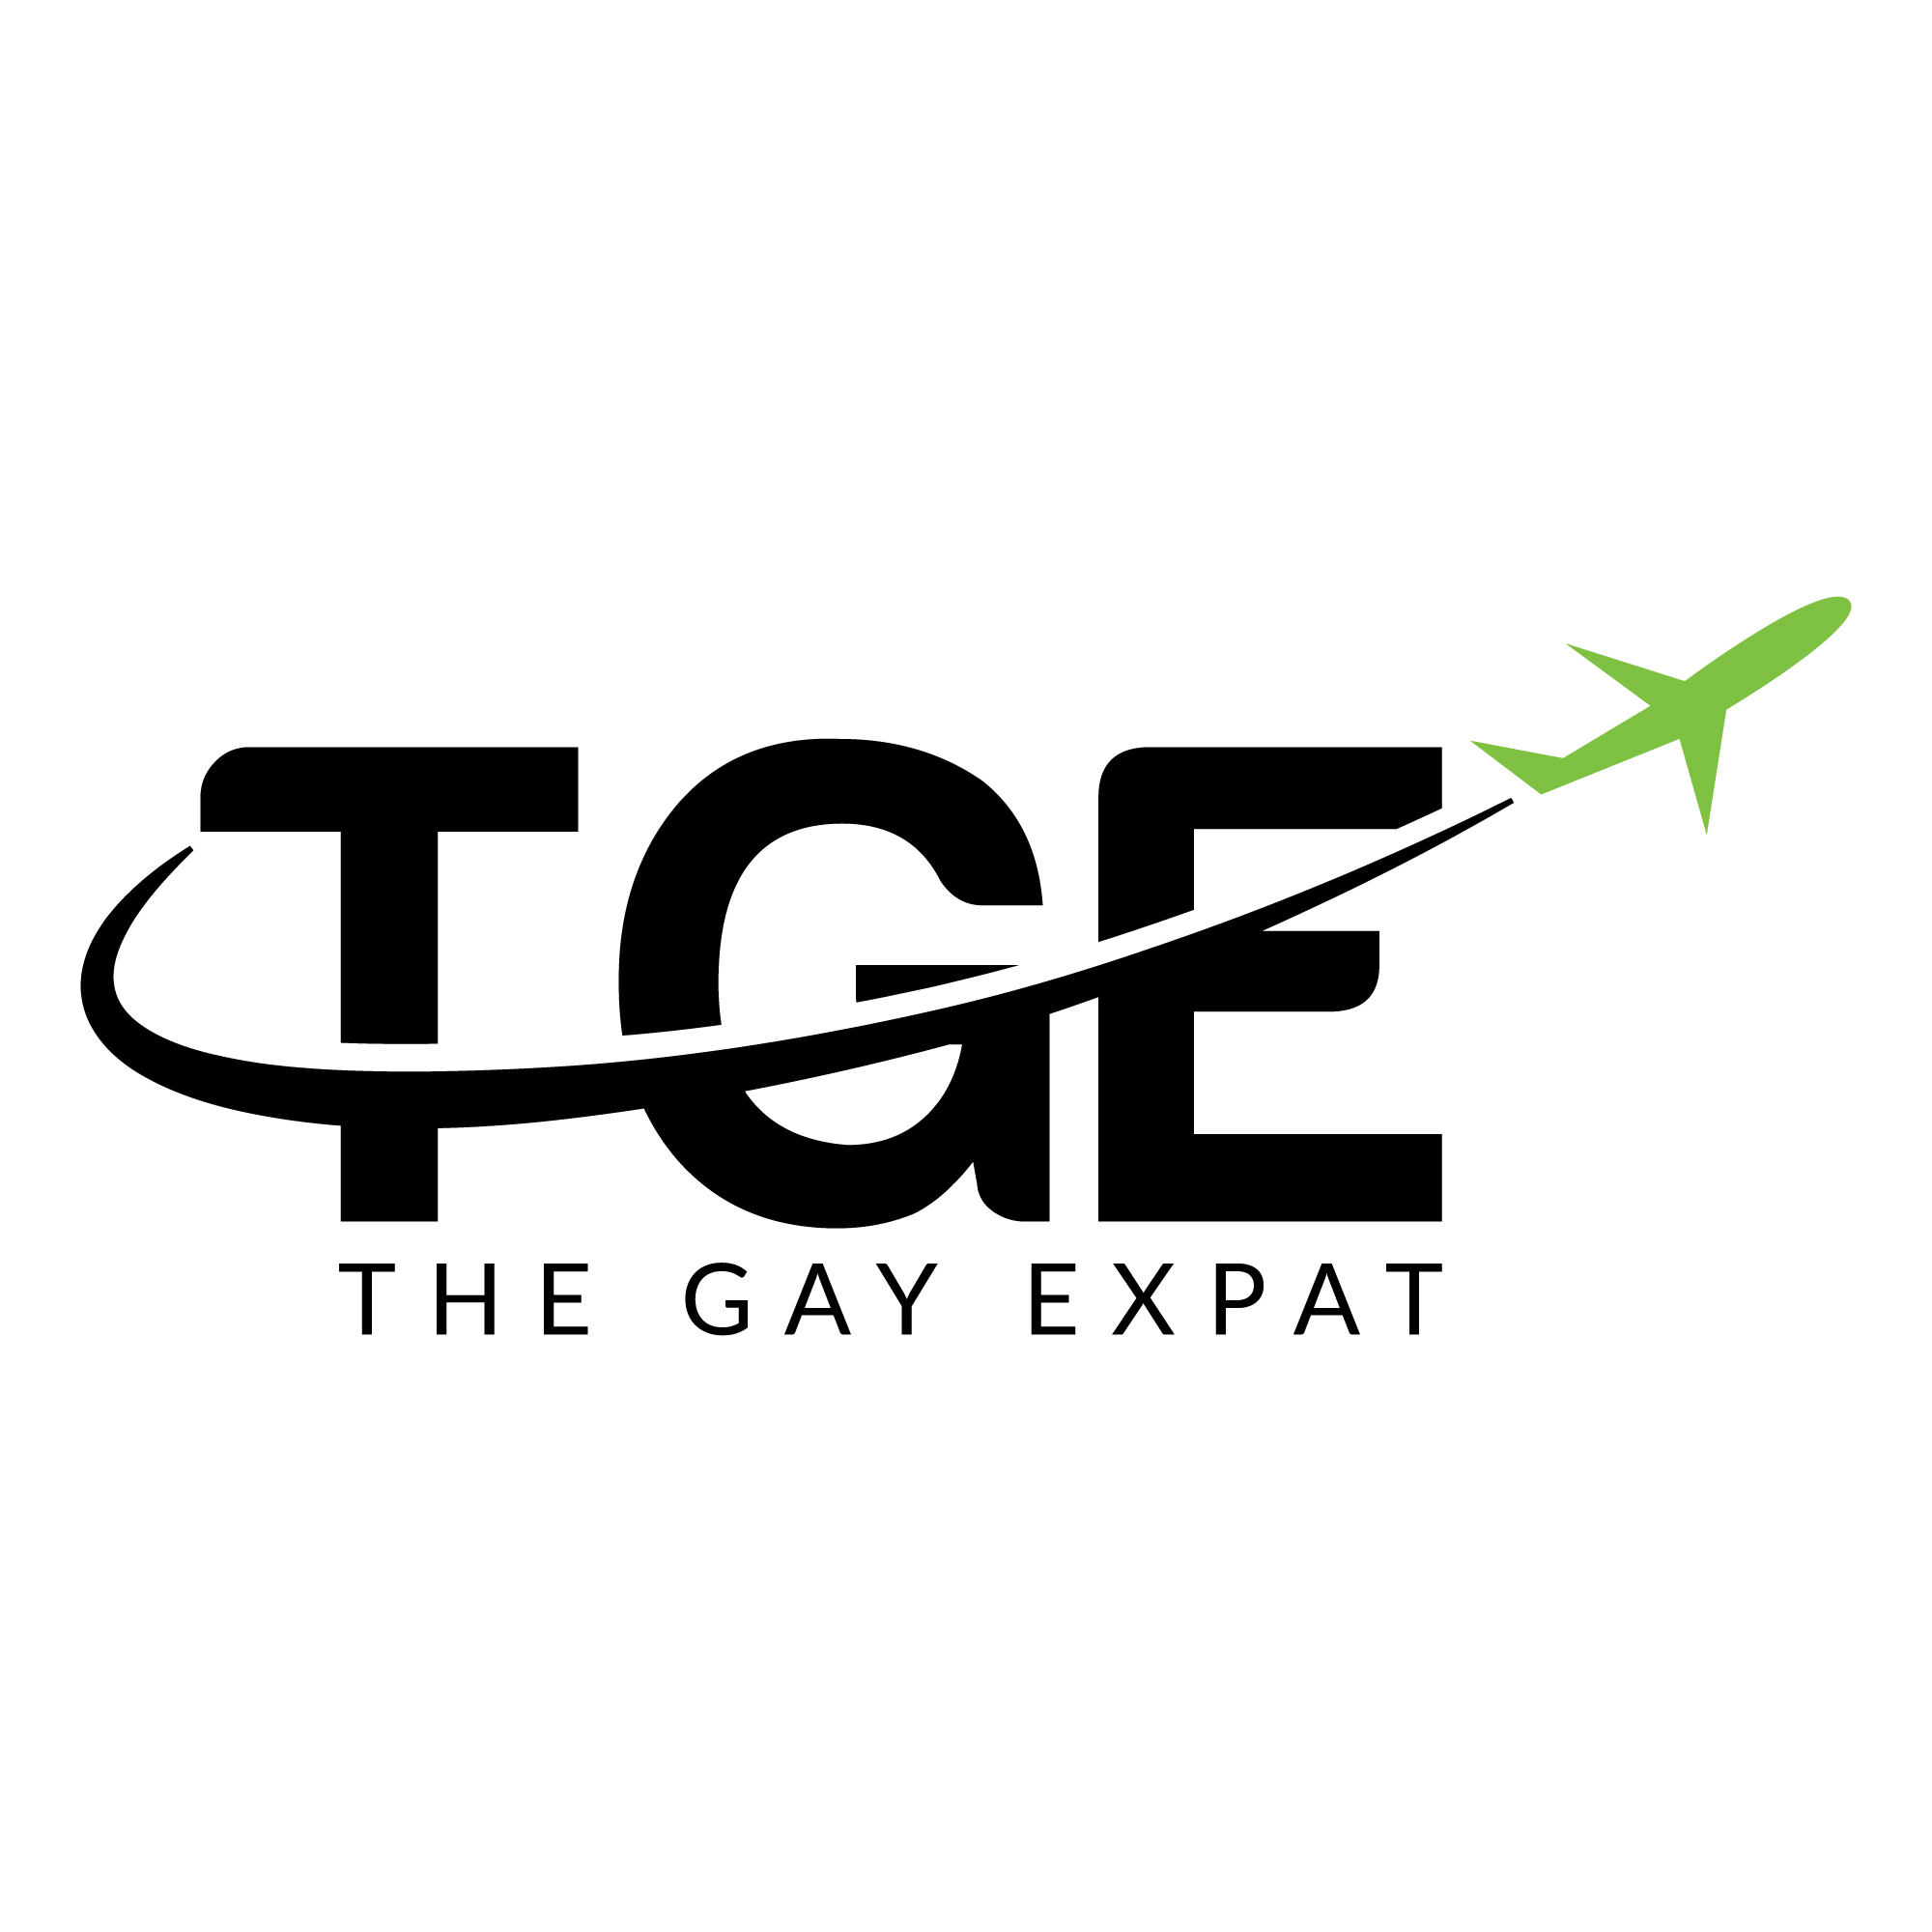 The Gay Expat